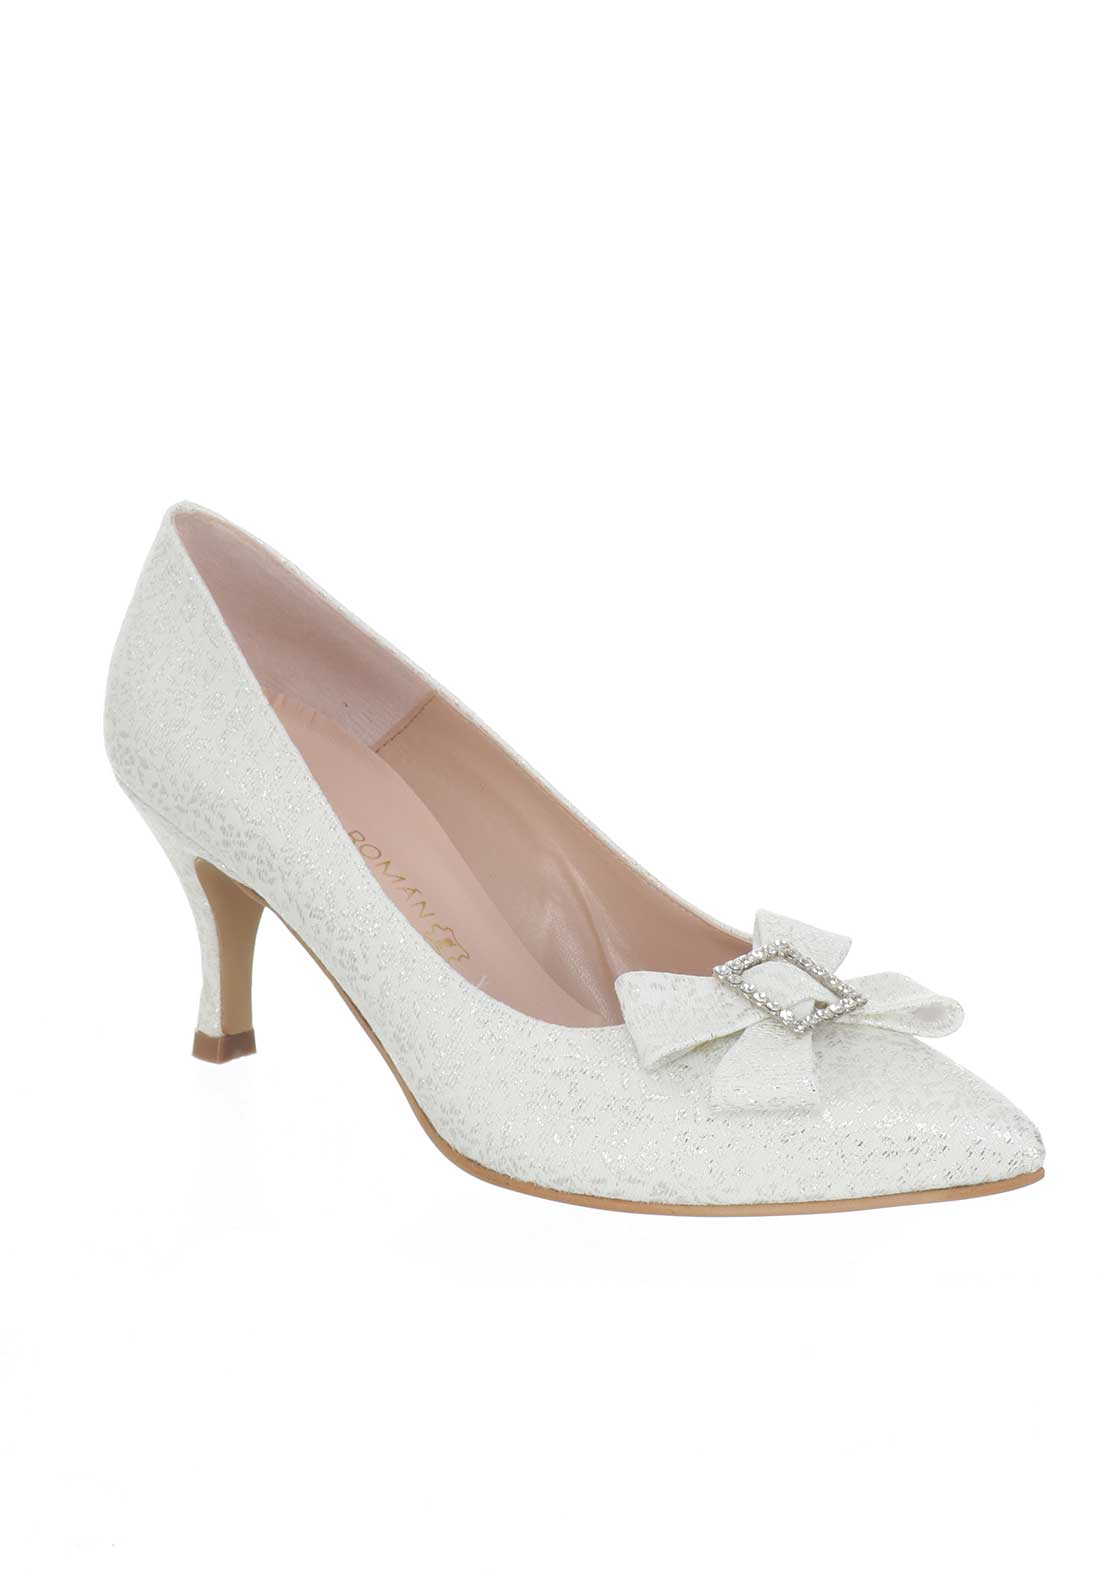 Ana Roman Ceremonial Heeled Court Shoes, White